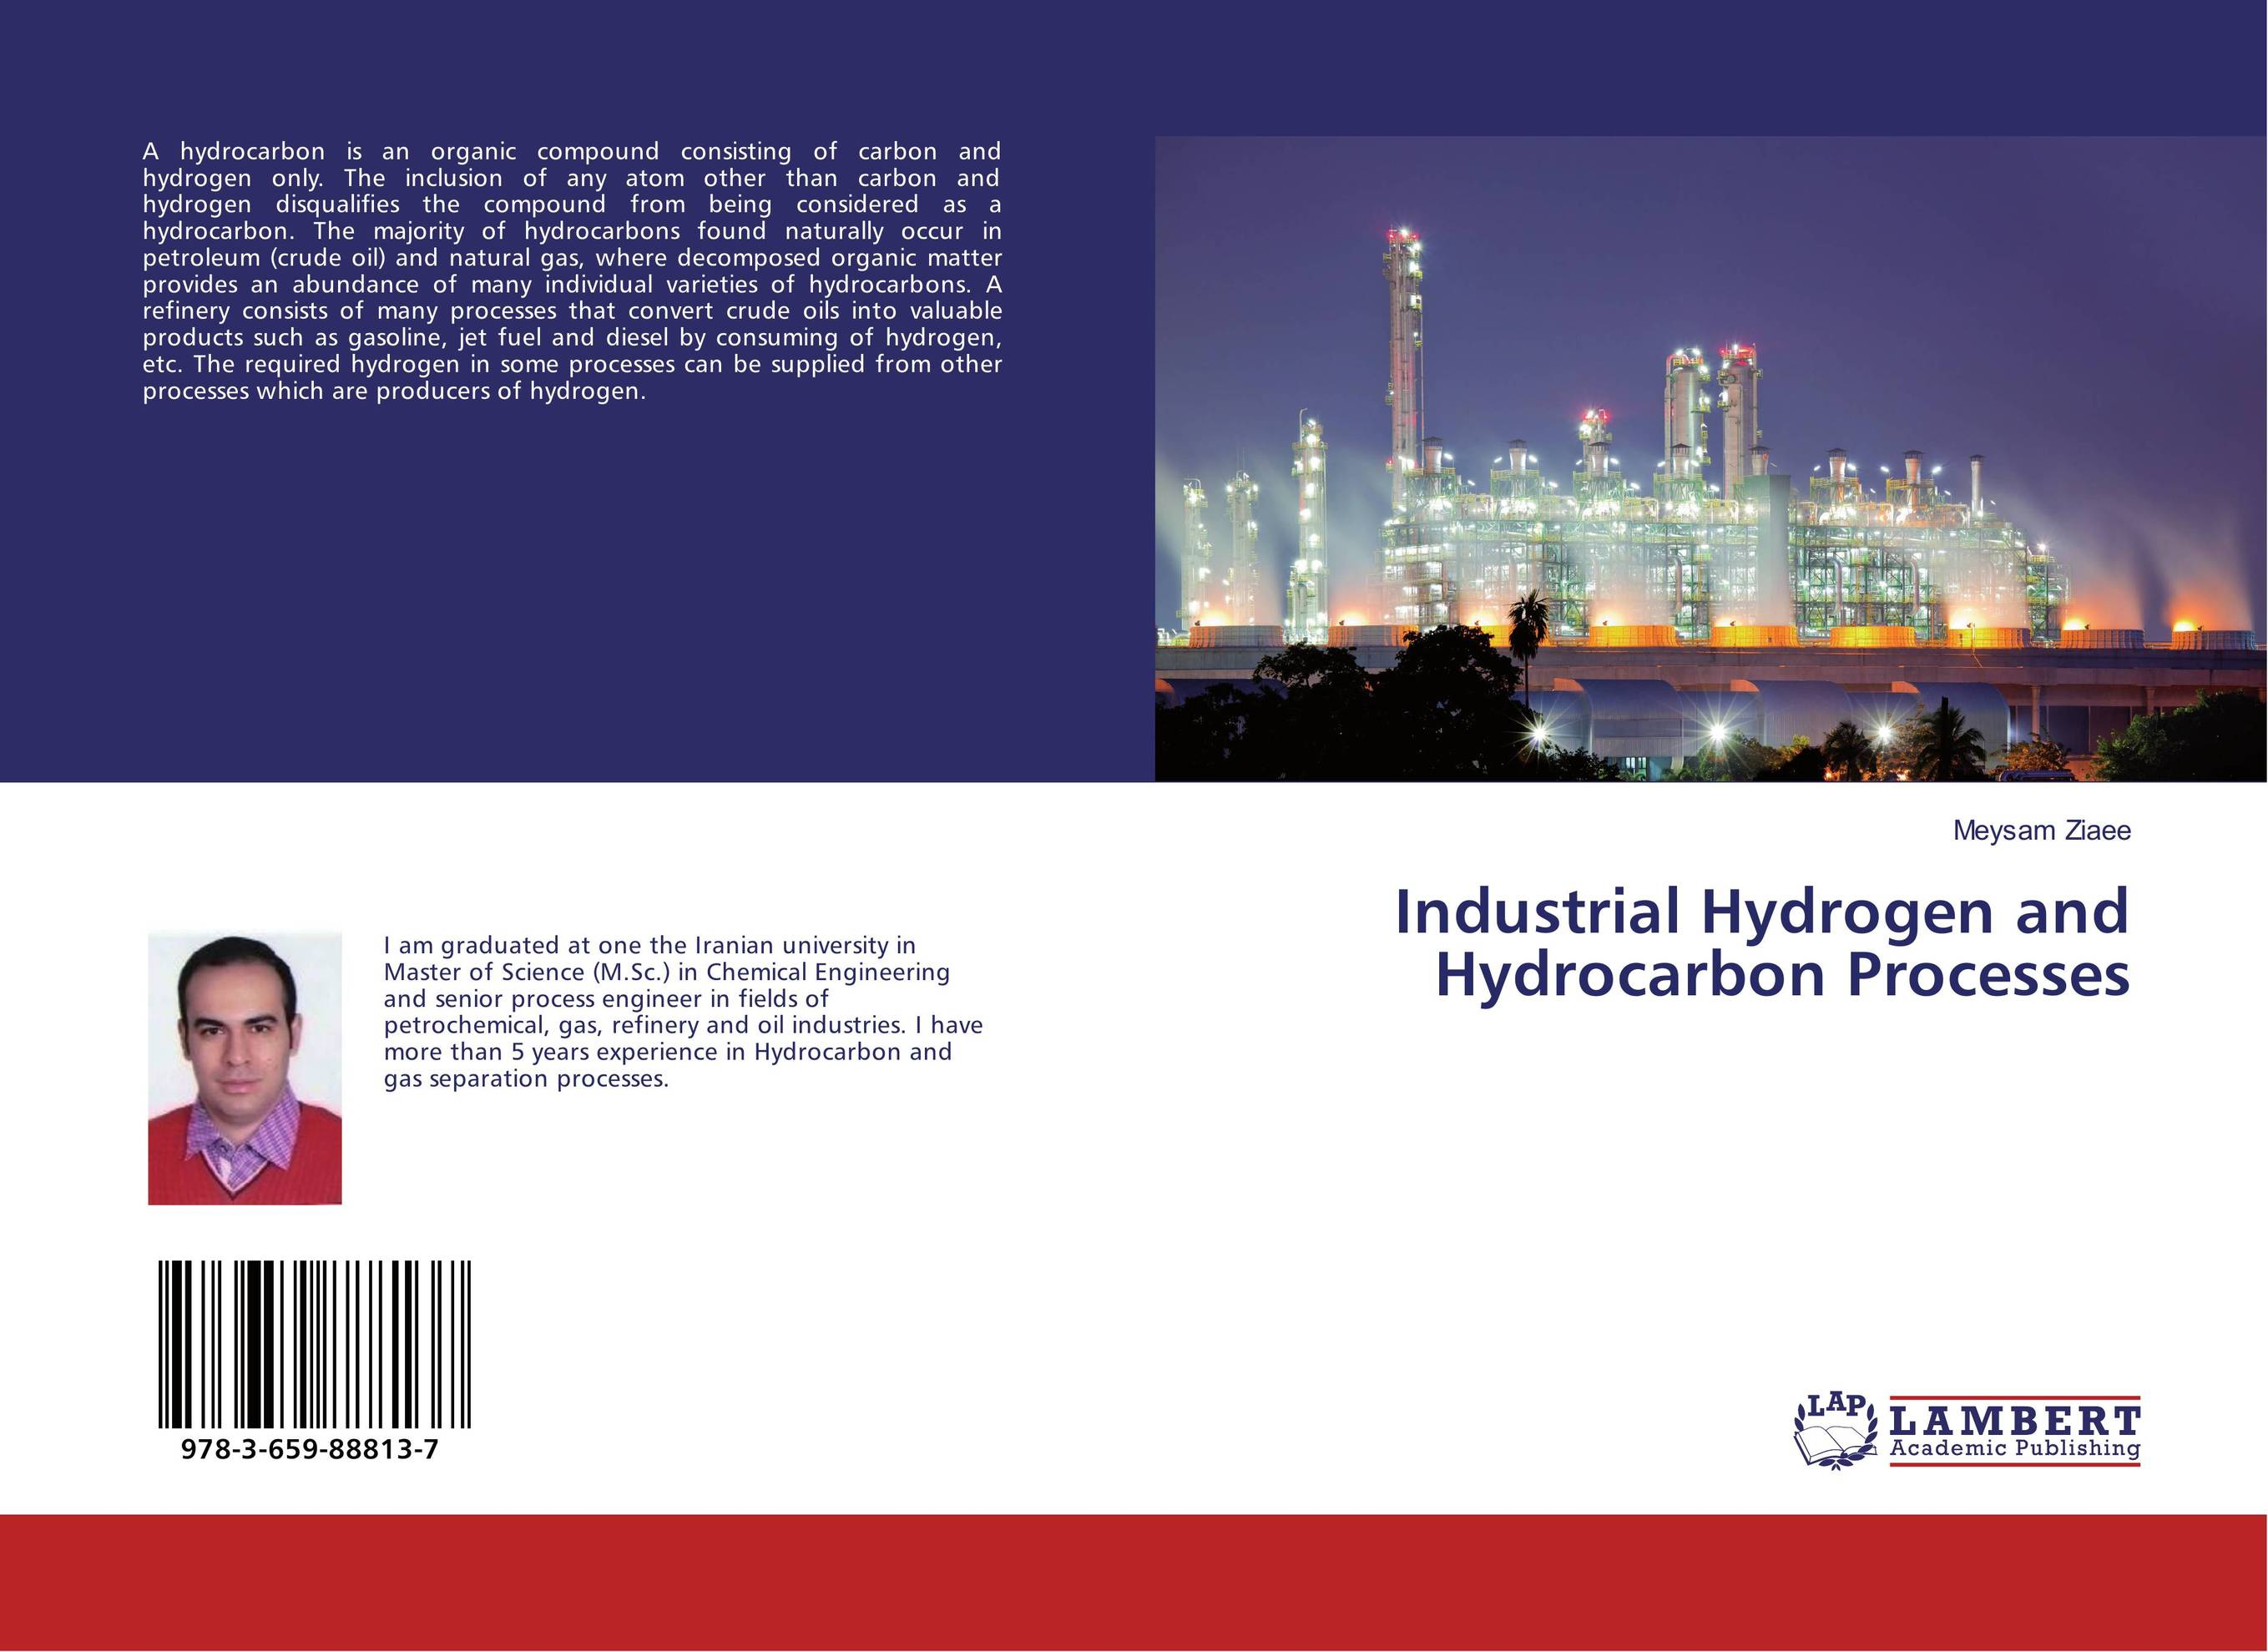 Industrial Hydrogen and Hydrocarbon Processes dearomatization of crude oil